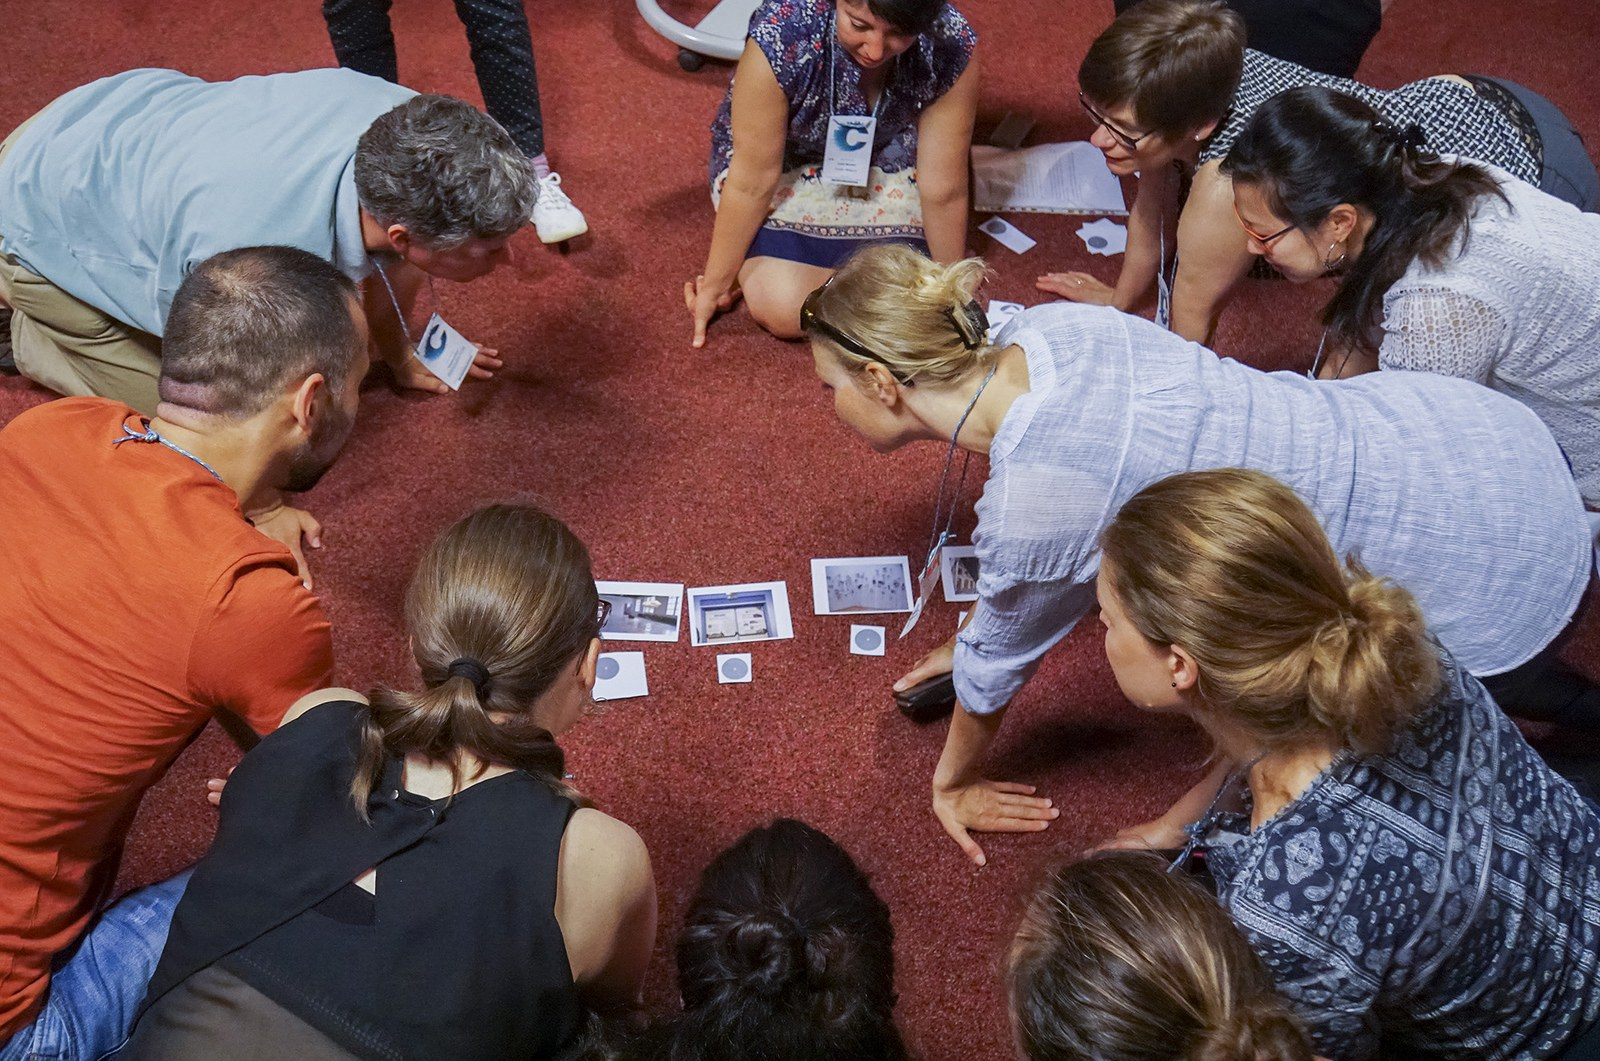 Session at the #Ecsite2018 conference in Geneva, Switzerland. (C)Ecsite-MuseumGeneve_Philippe_Wagneur